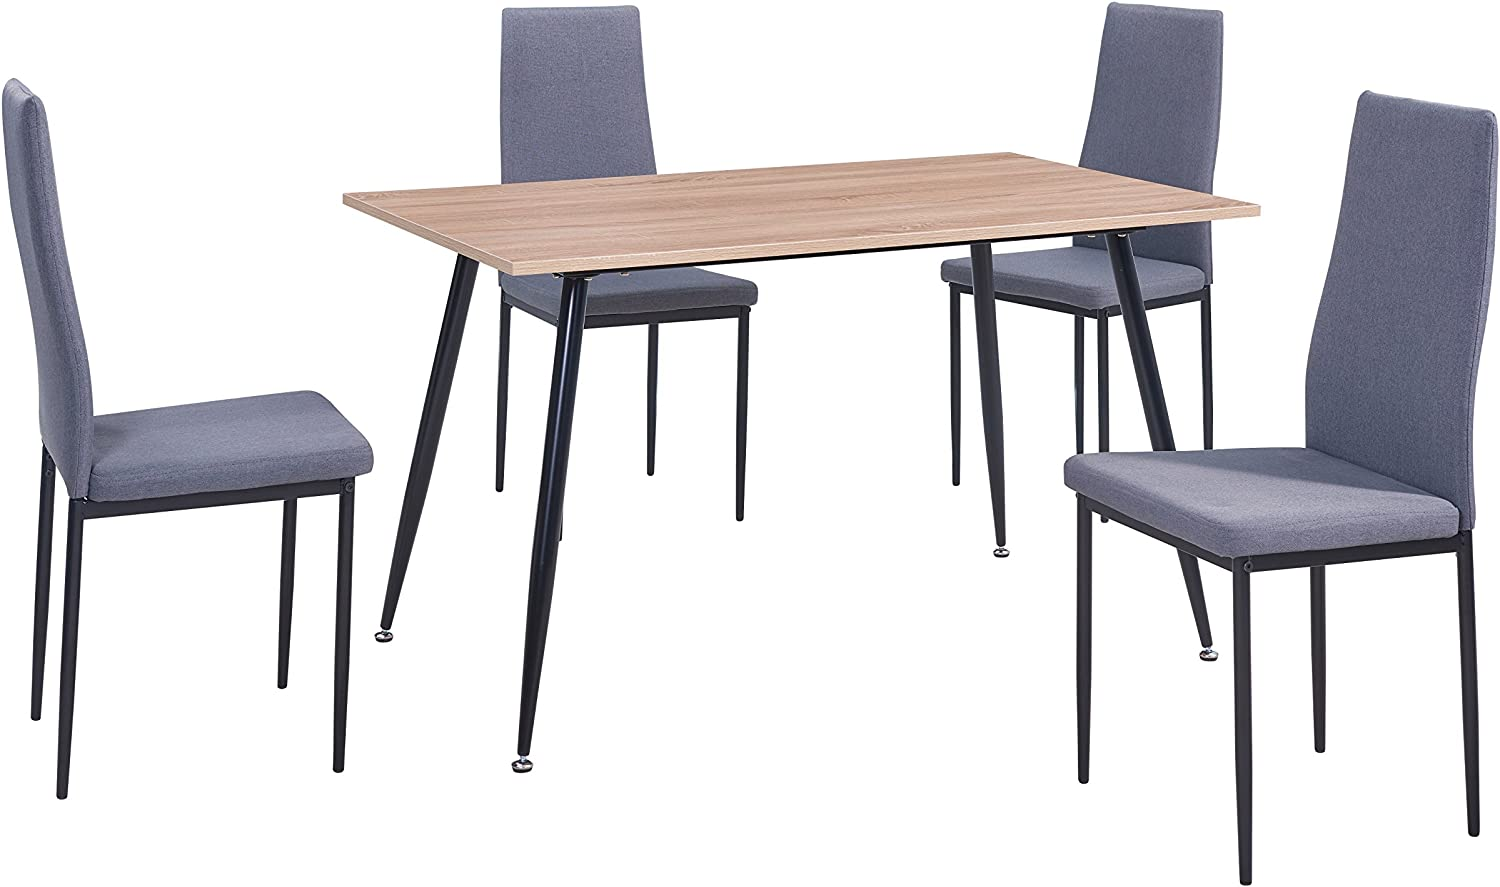 5 Piece Dining Set Table and 4 Padded Seat Chairs Home Kitchen Furniture Modern